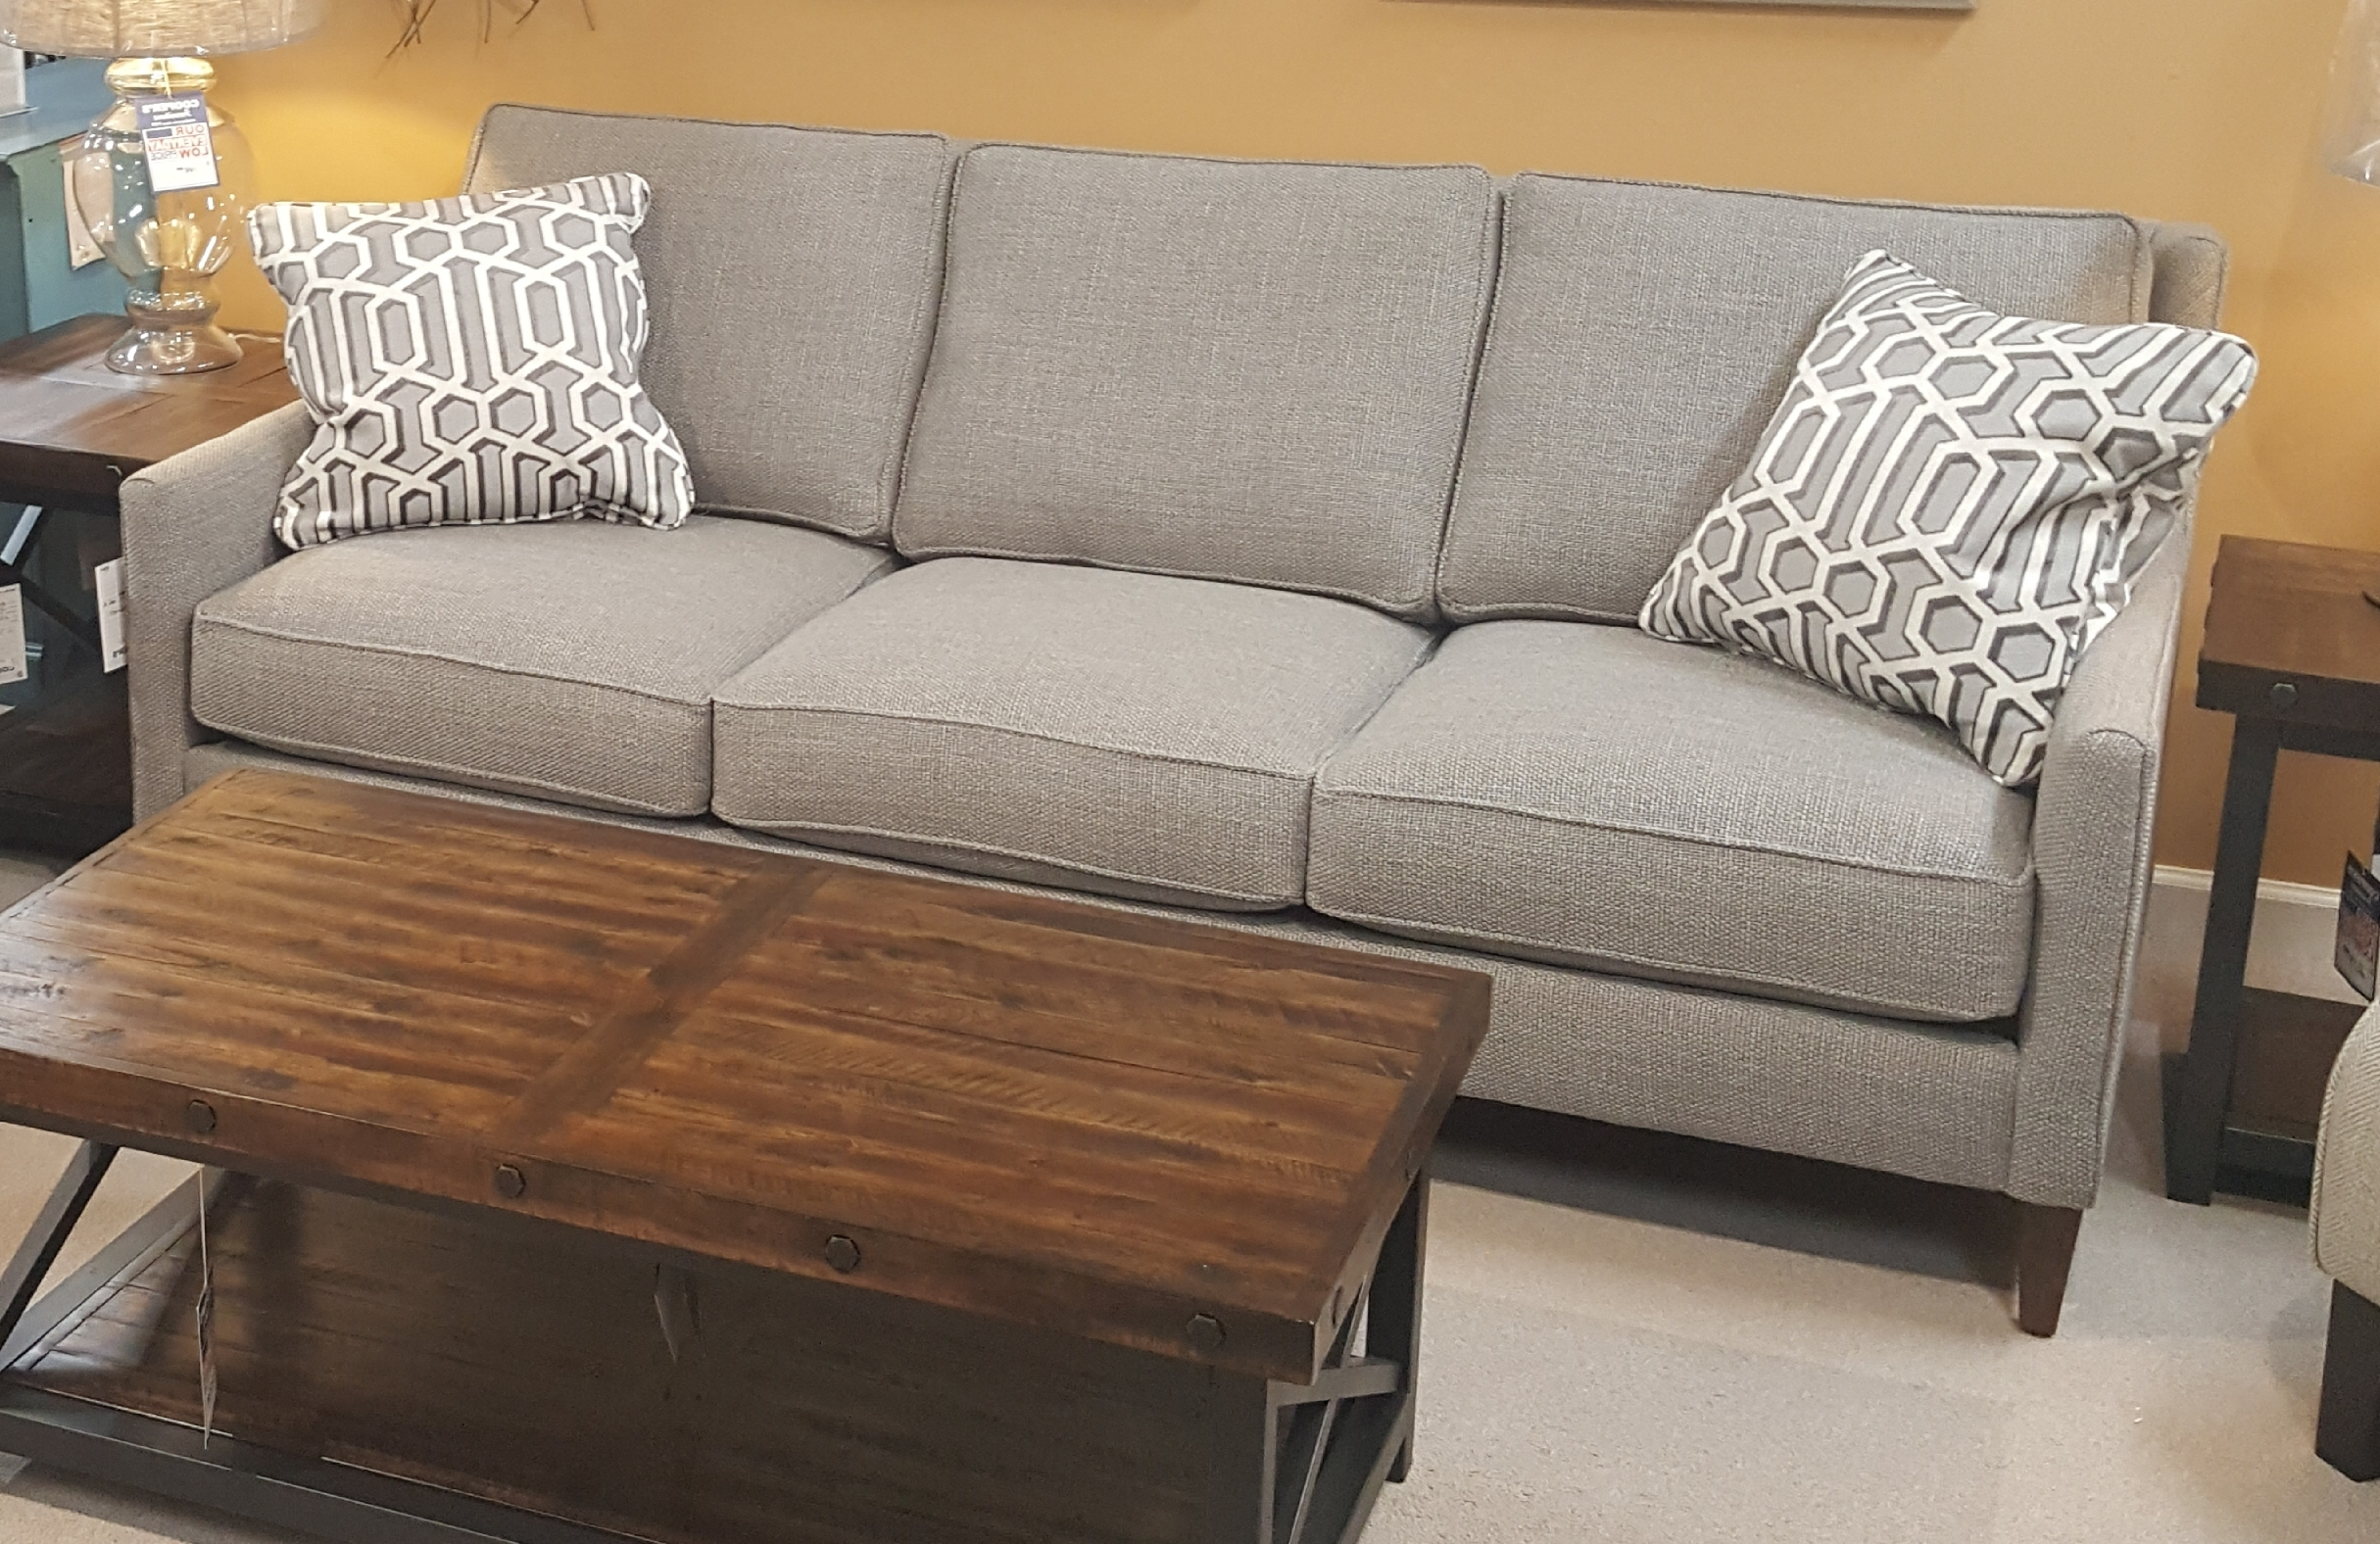 Durham Region Sectional Sofas With Regard To 2018 Living Room Furniture Cary Nc (View 3 of 15)